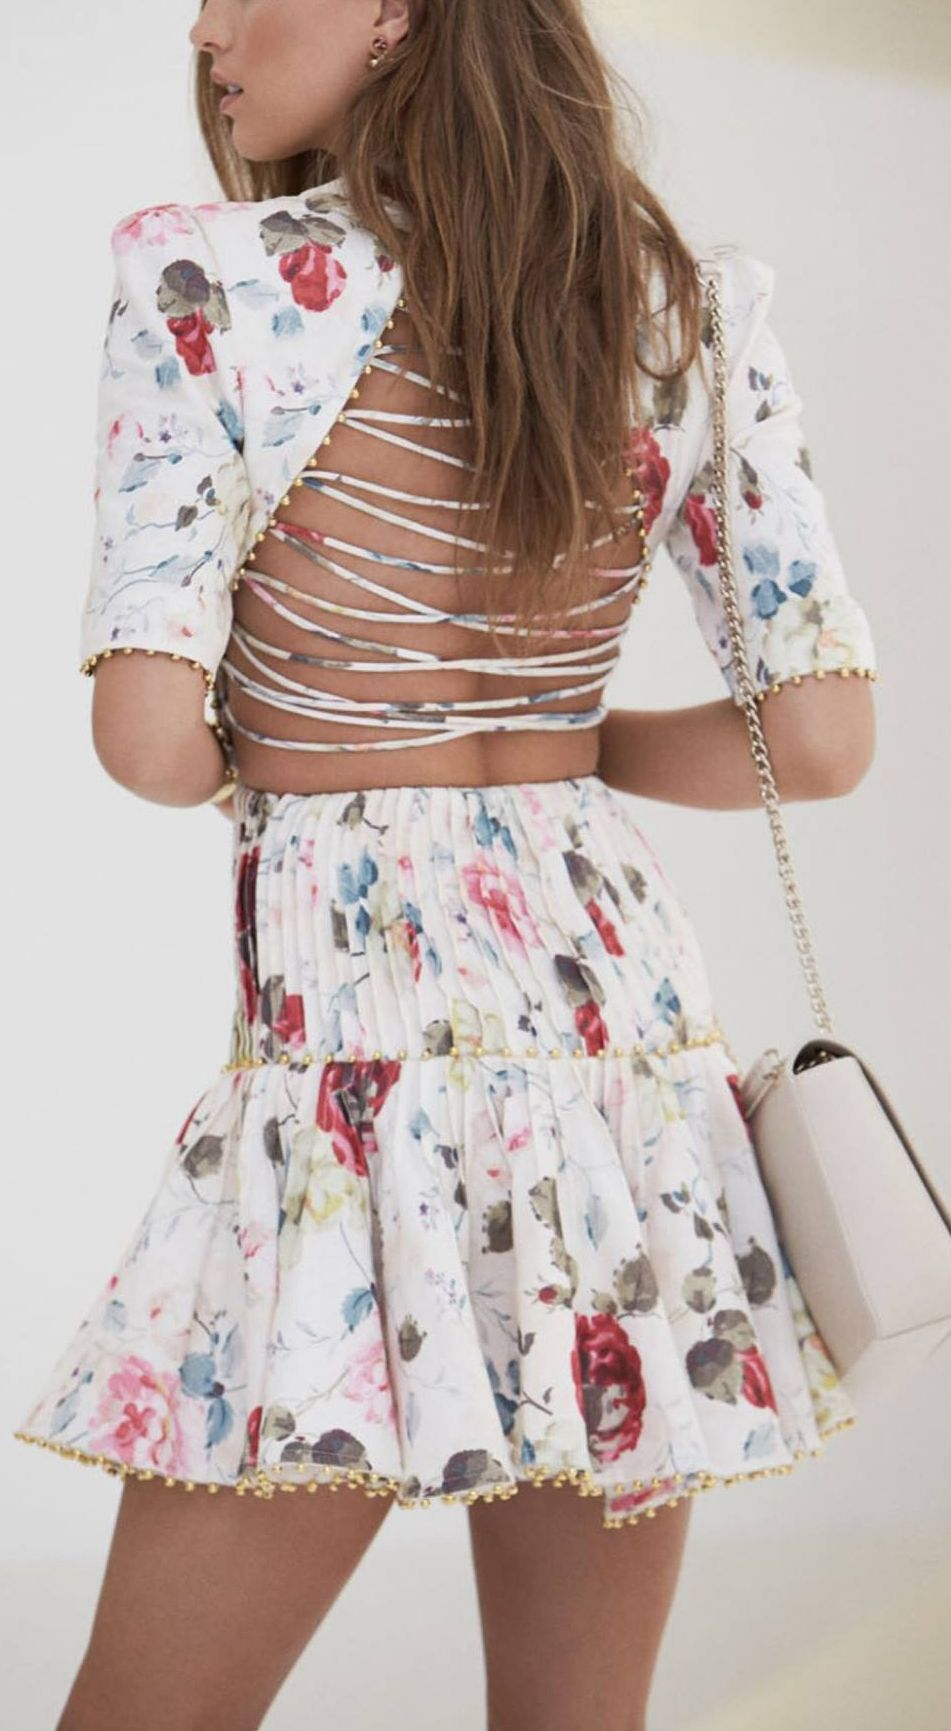 Criss cross back i like that style it wouldnut look that nice on